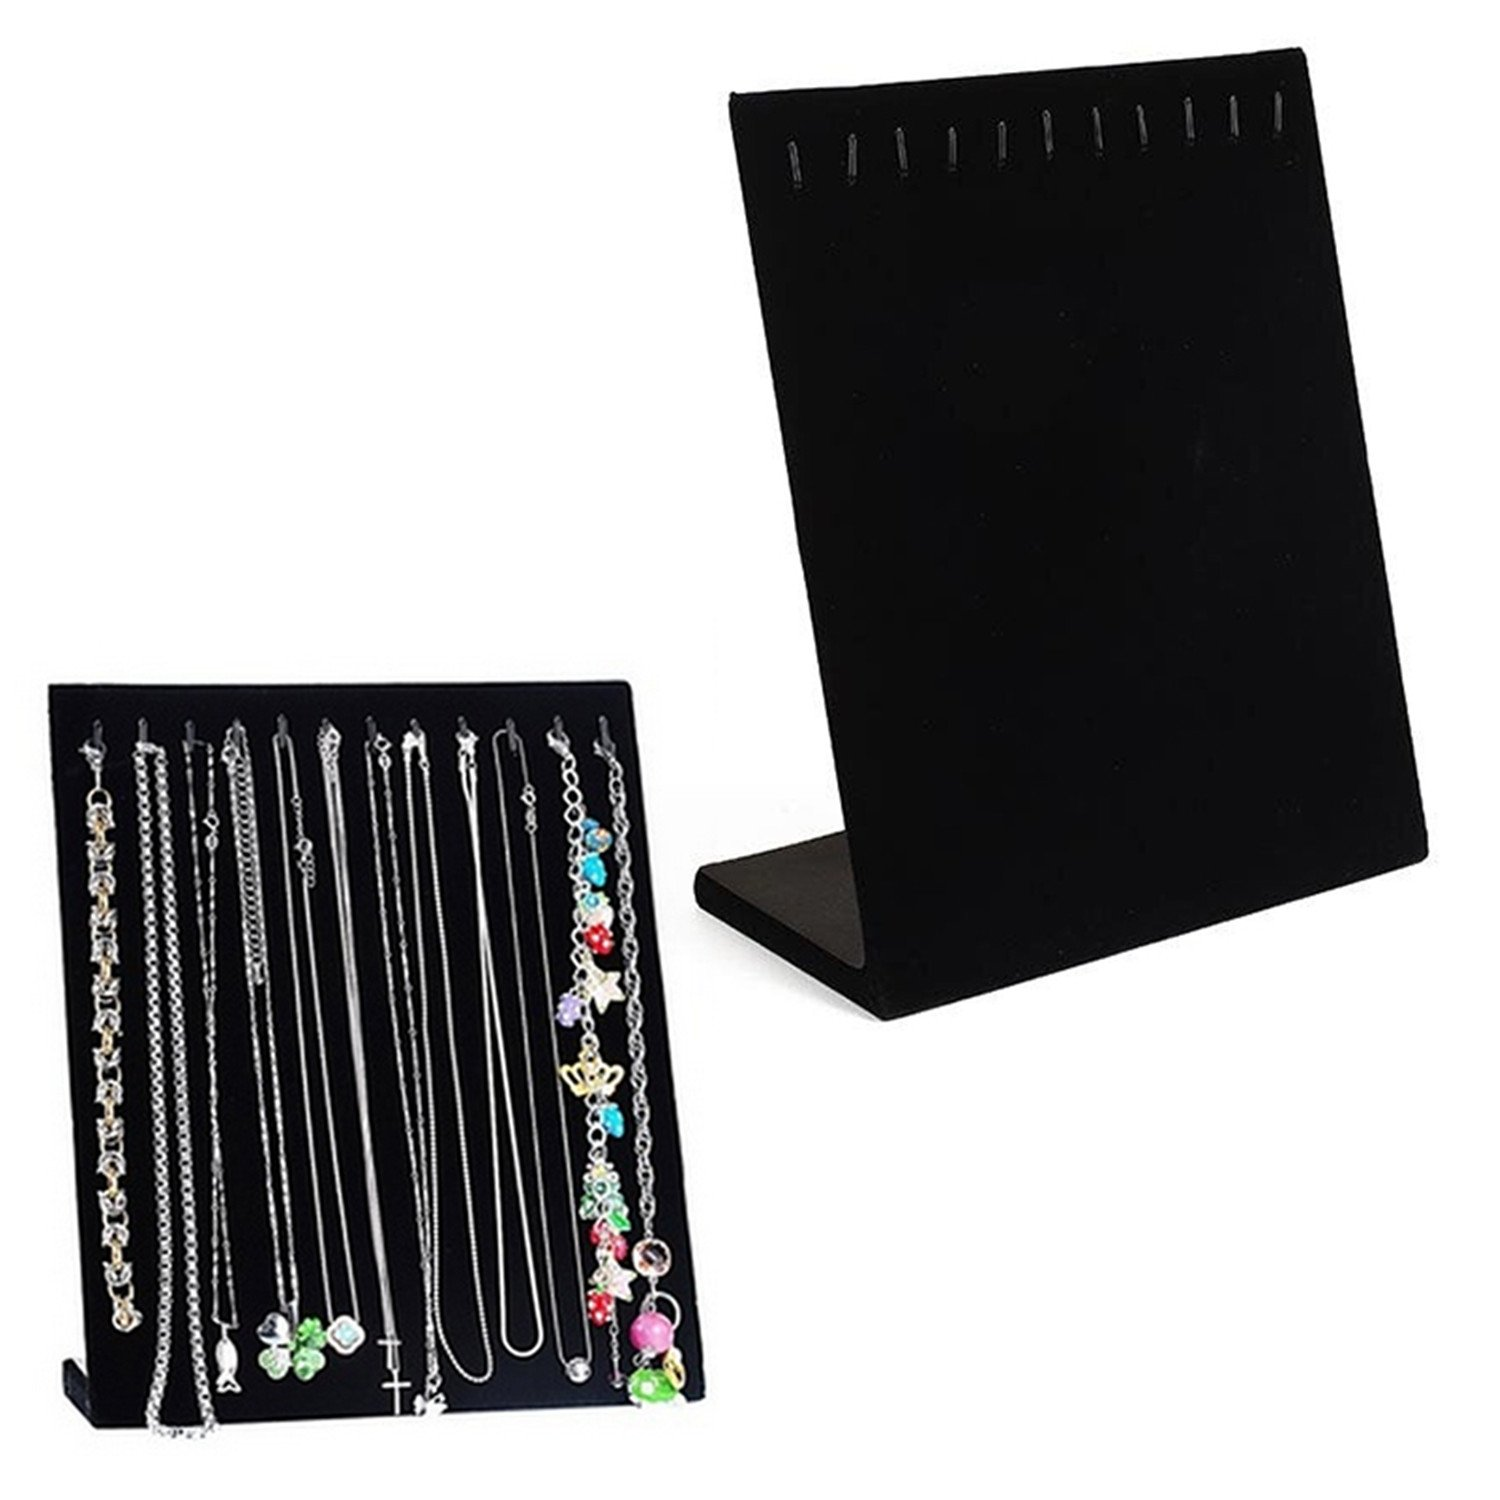 Abeillo Black Velvet Rectangle Jewelry Holder Pandent Chain Bracelet Necklace Display Stand Show Case Organizer